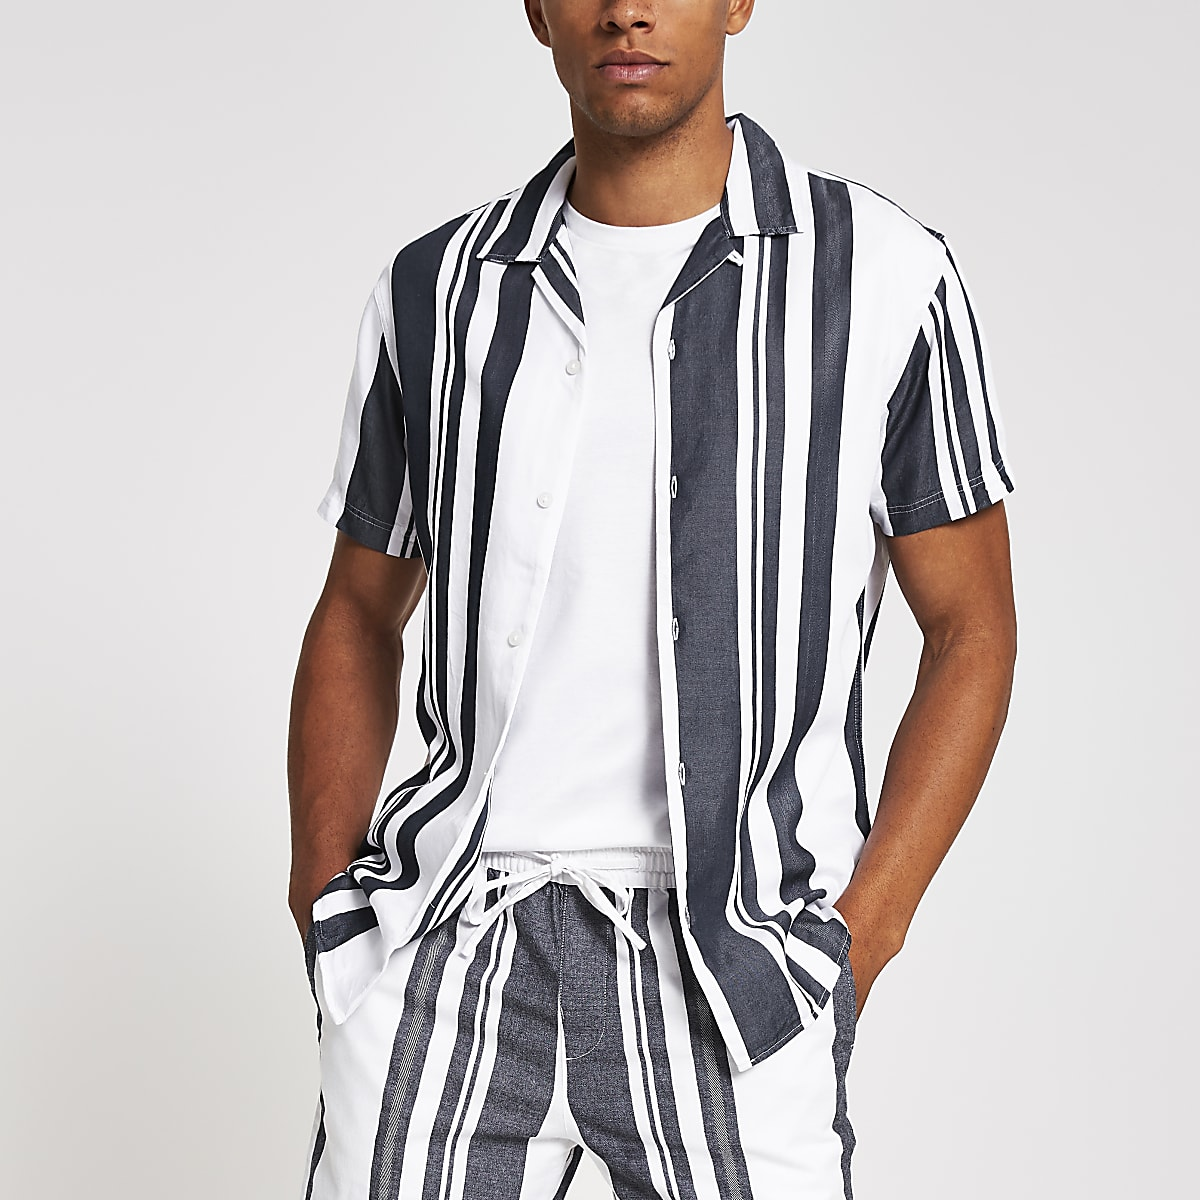 Selected Homme navy stripe short sleeve shirt